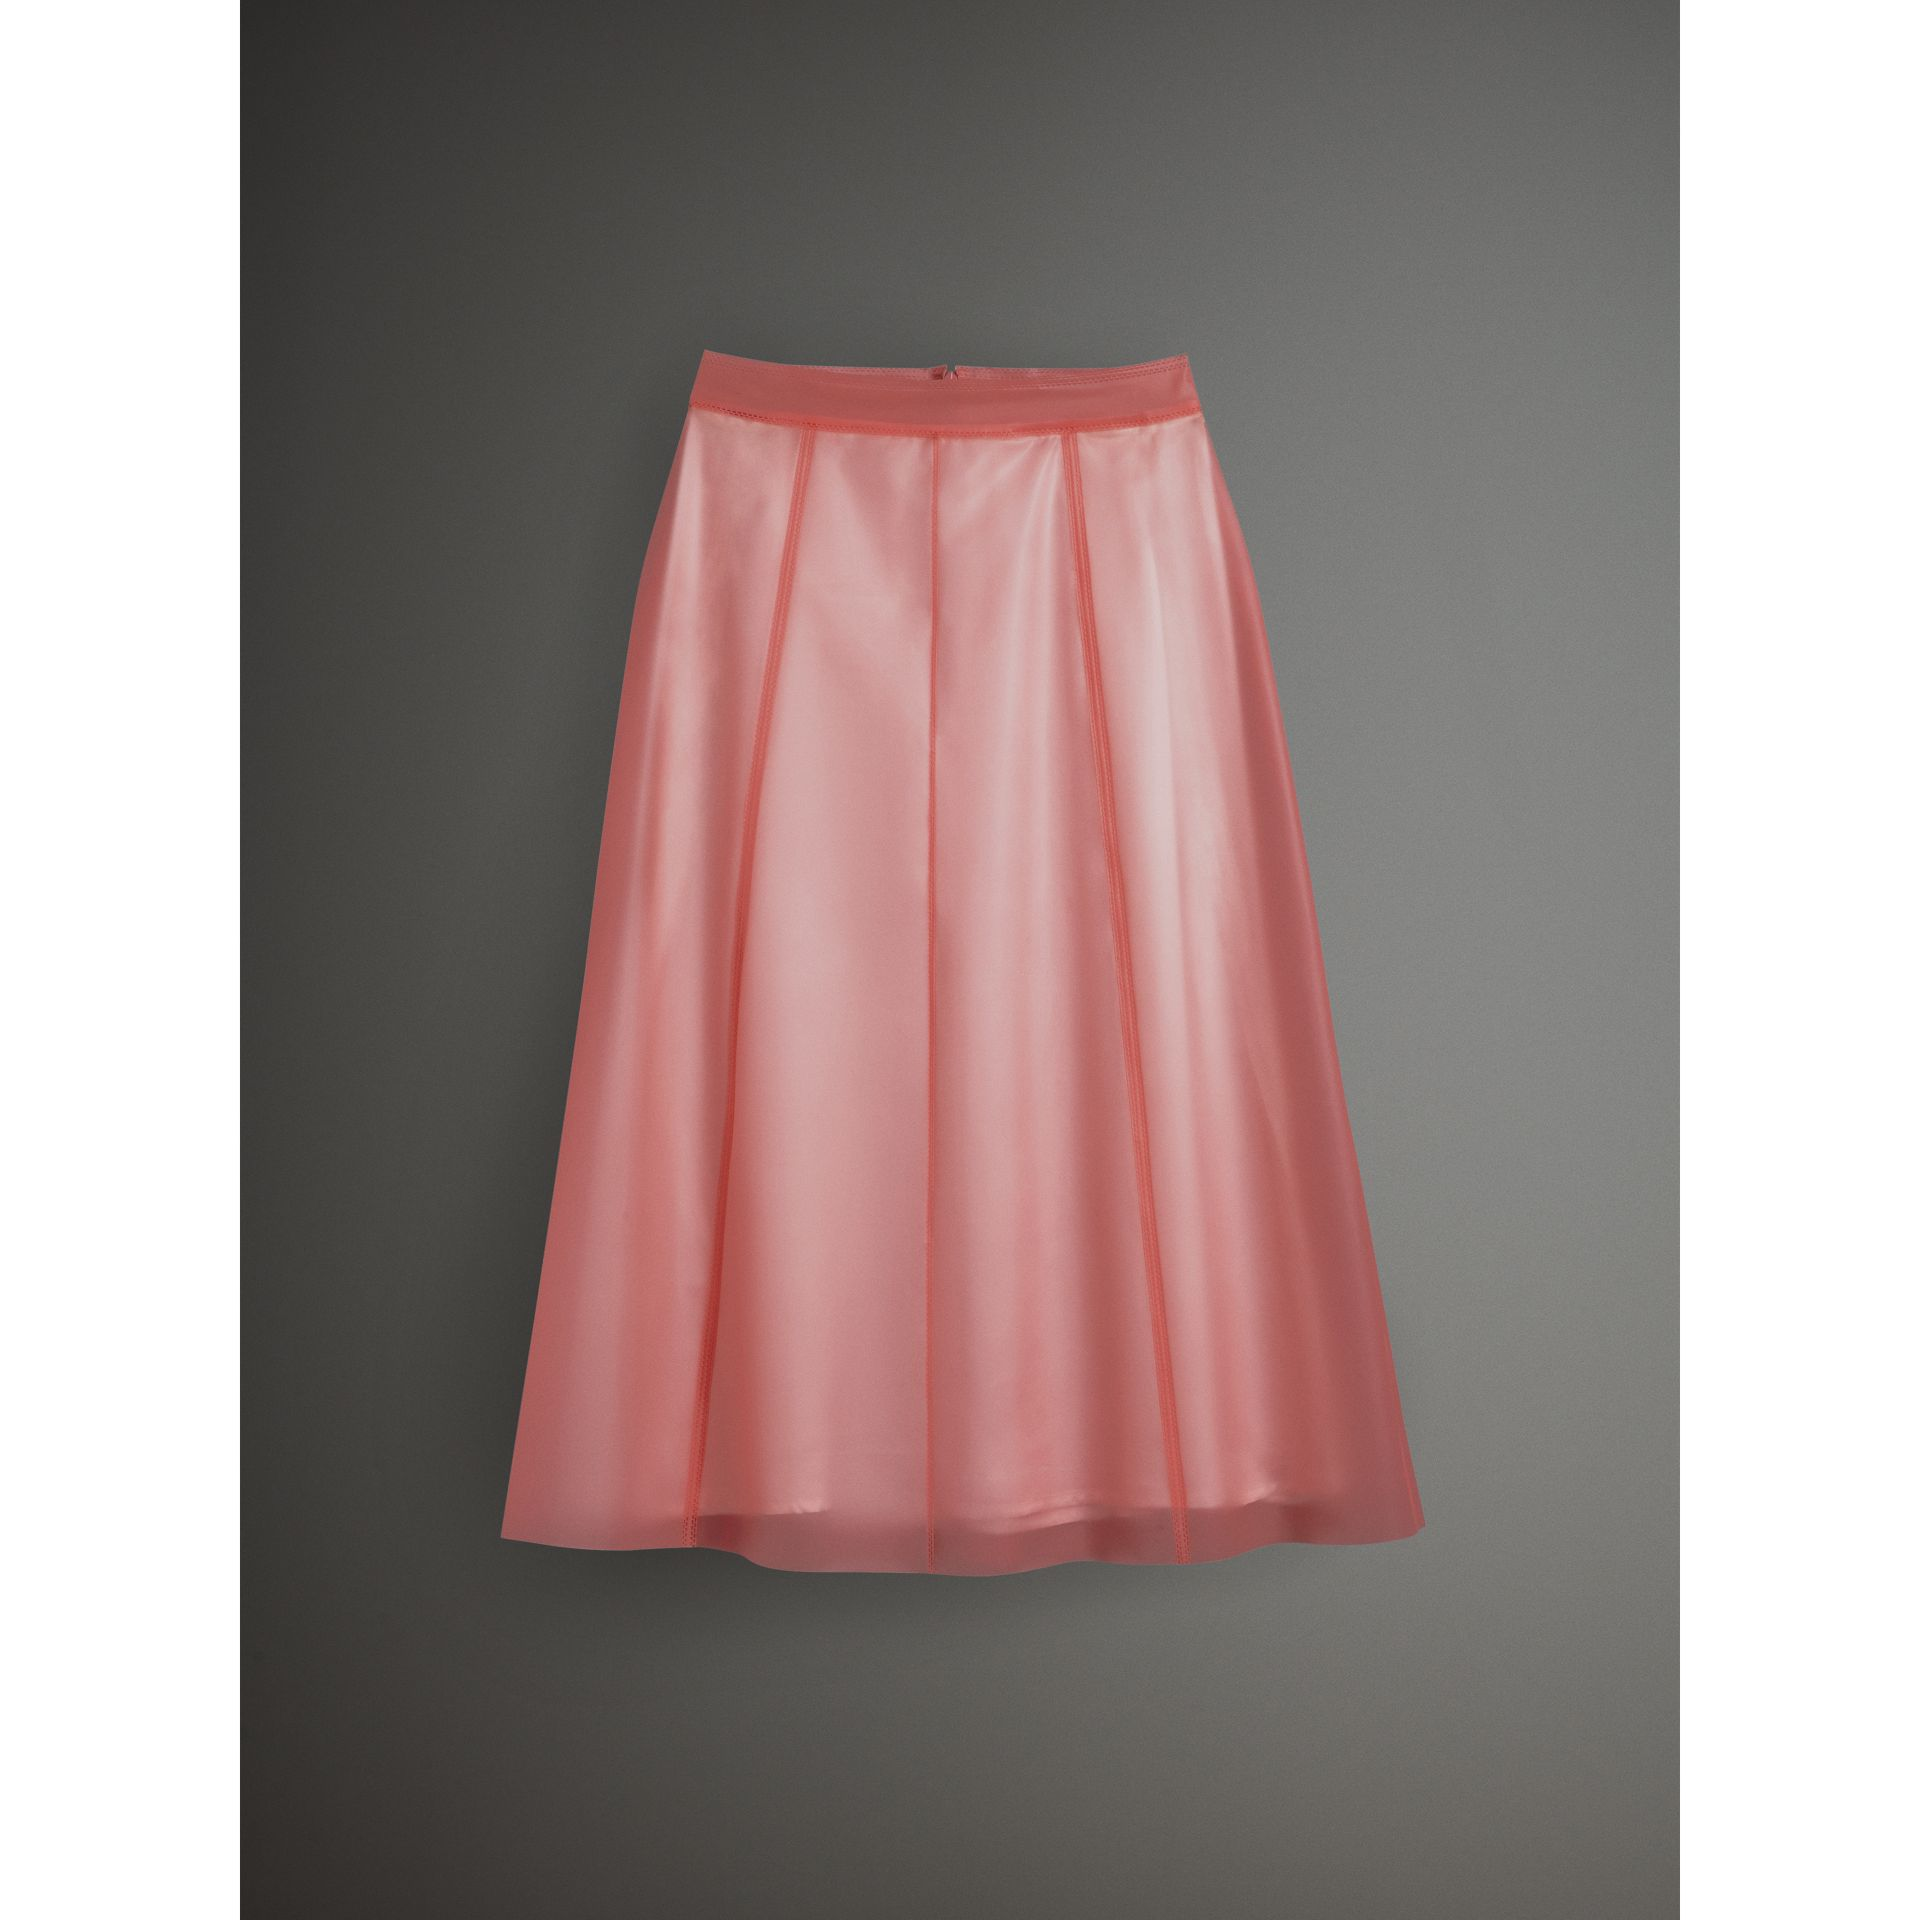 Silk-lined Plastic A-line Skirt in Rose Pink - Women | Burberry Hong Kong - gallery image 4